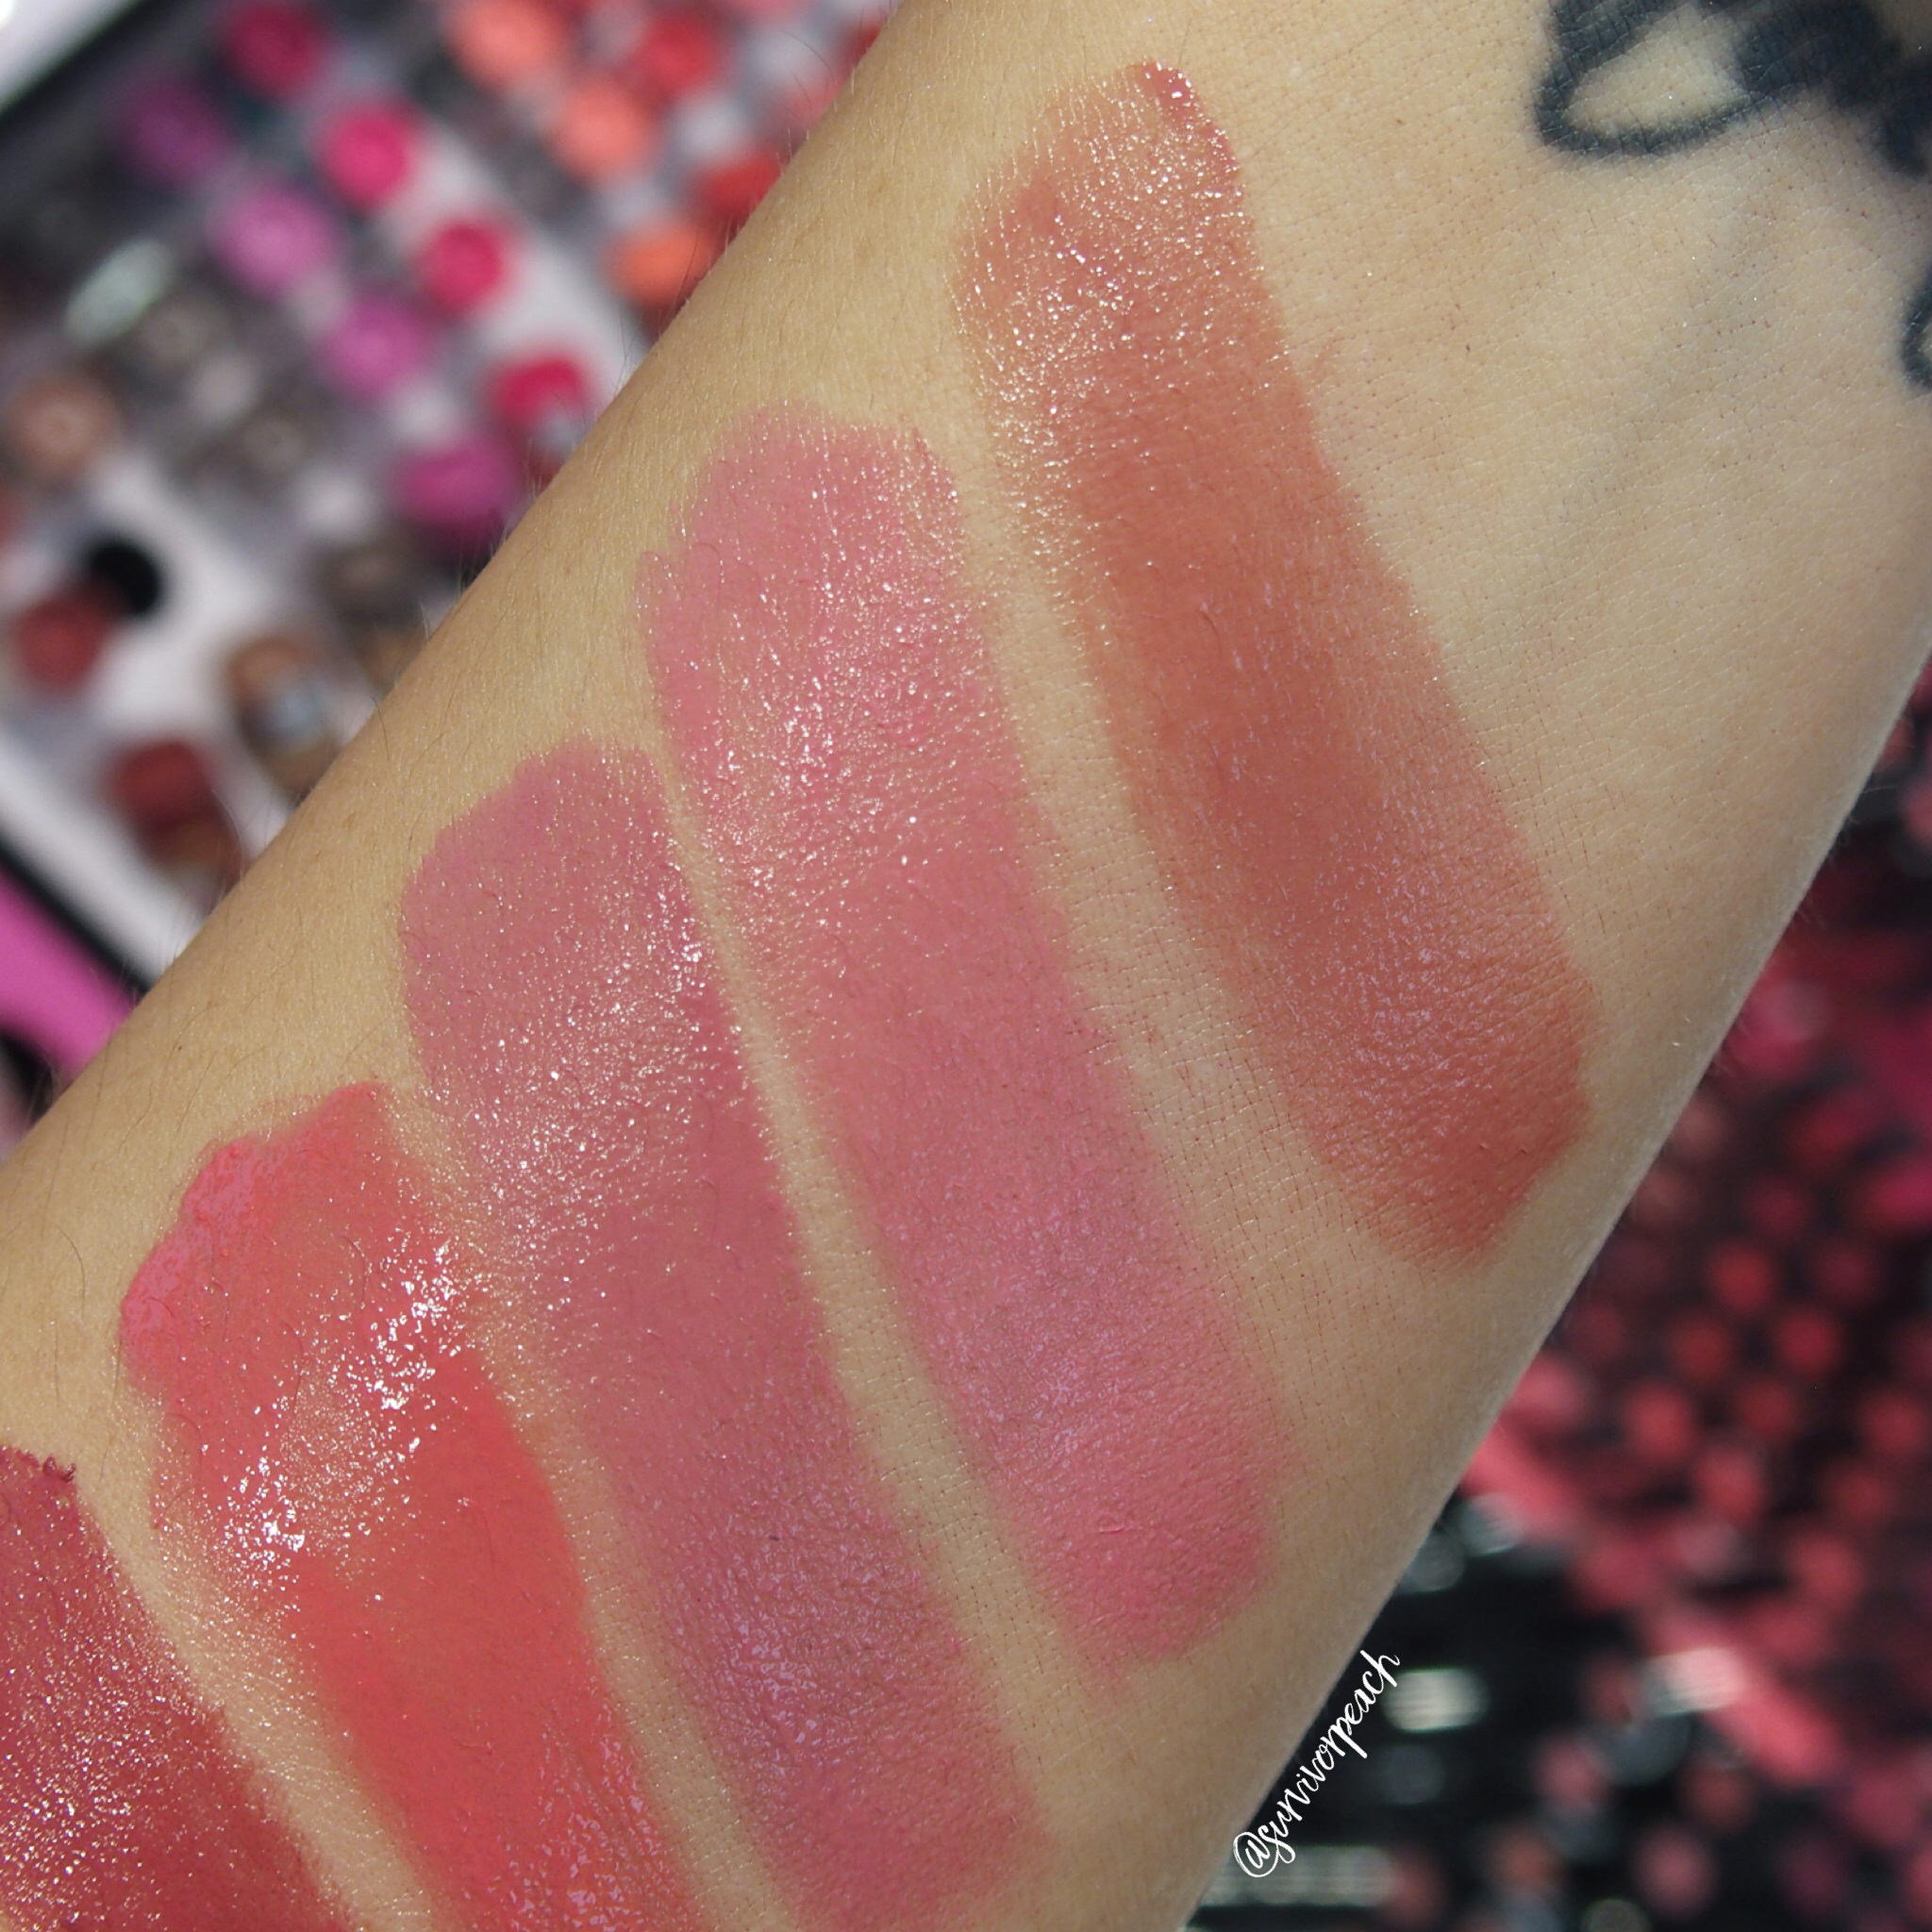 Sephora Collection Lipstick Rouge Lacquer Lipstick swatches - L15 Not Your Baby , L16 Girl Crush, L17 Rise Above